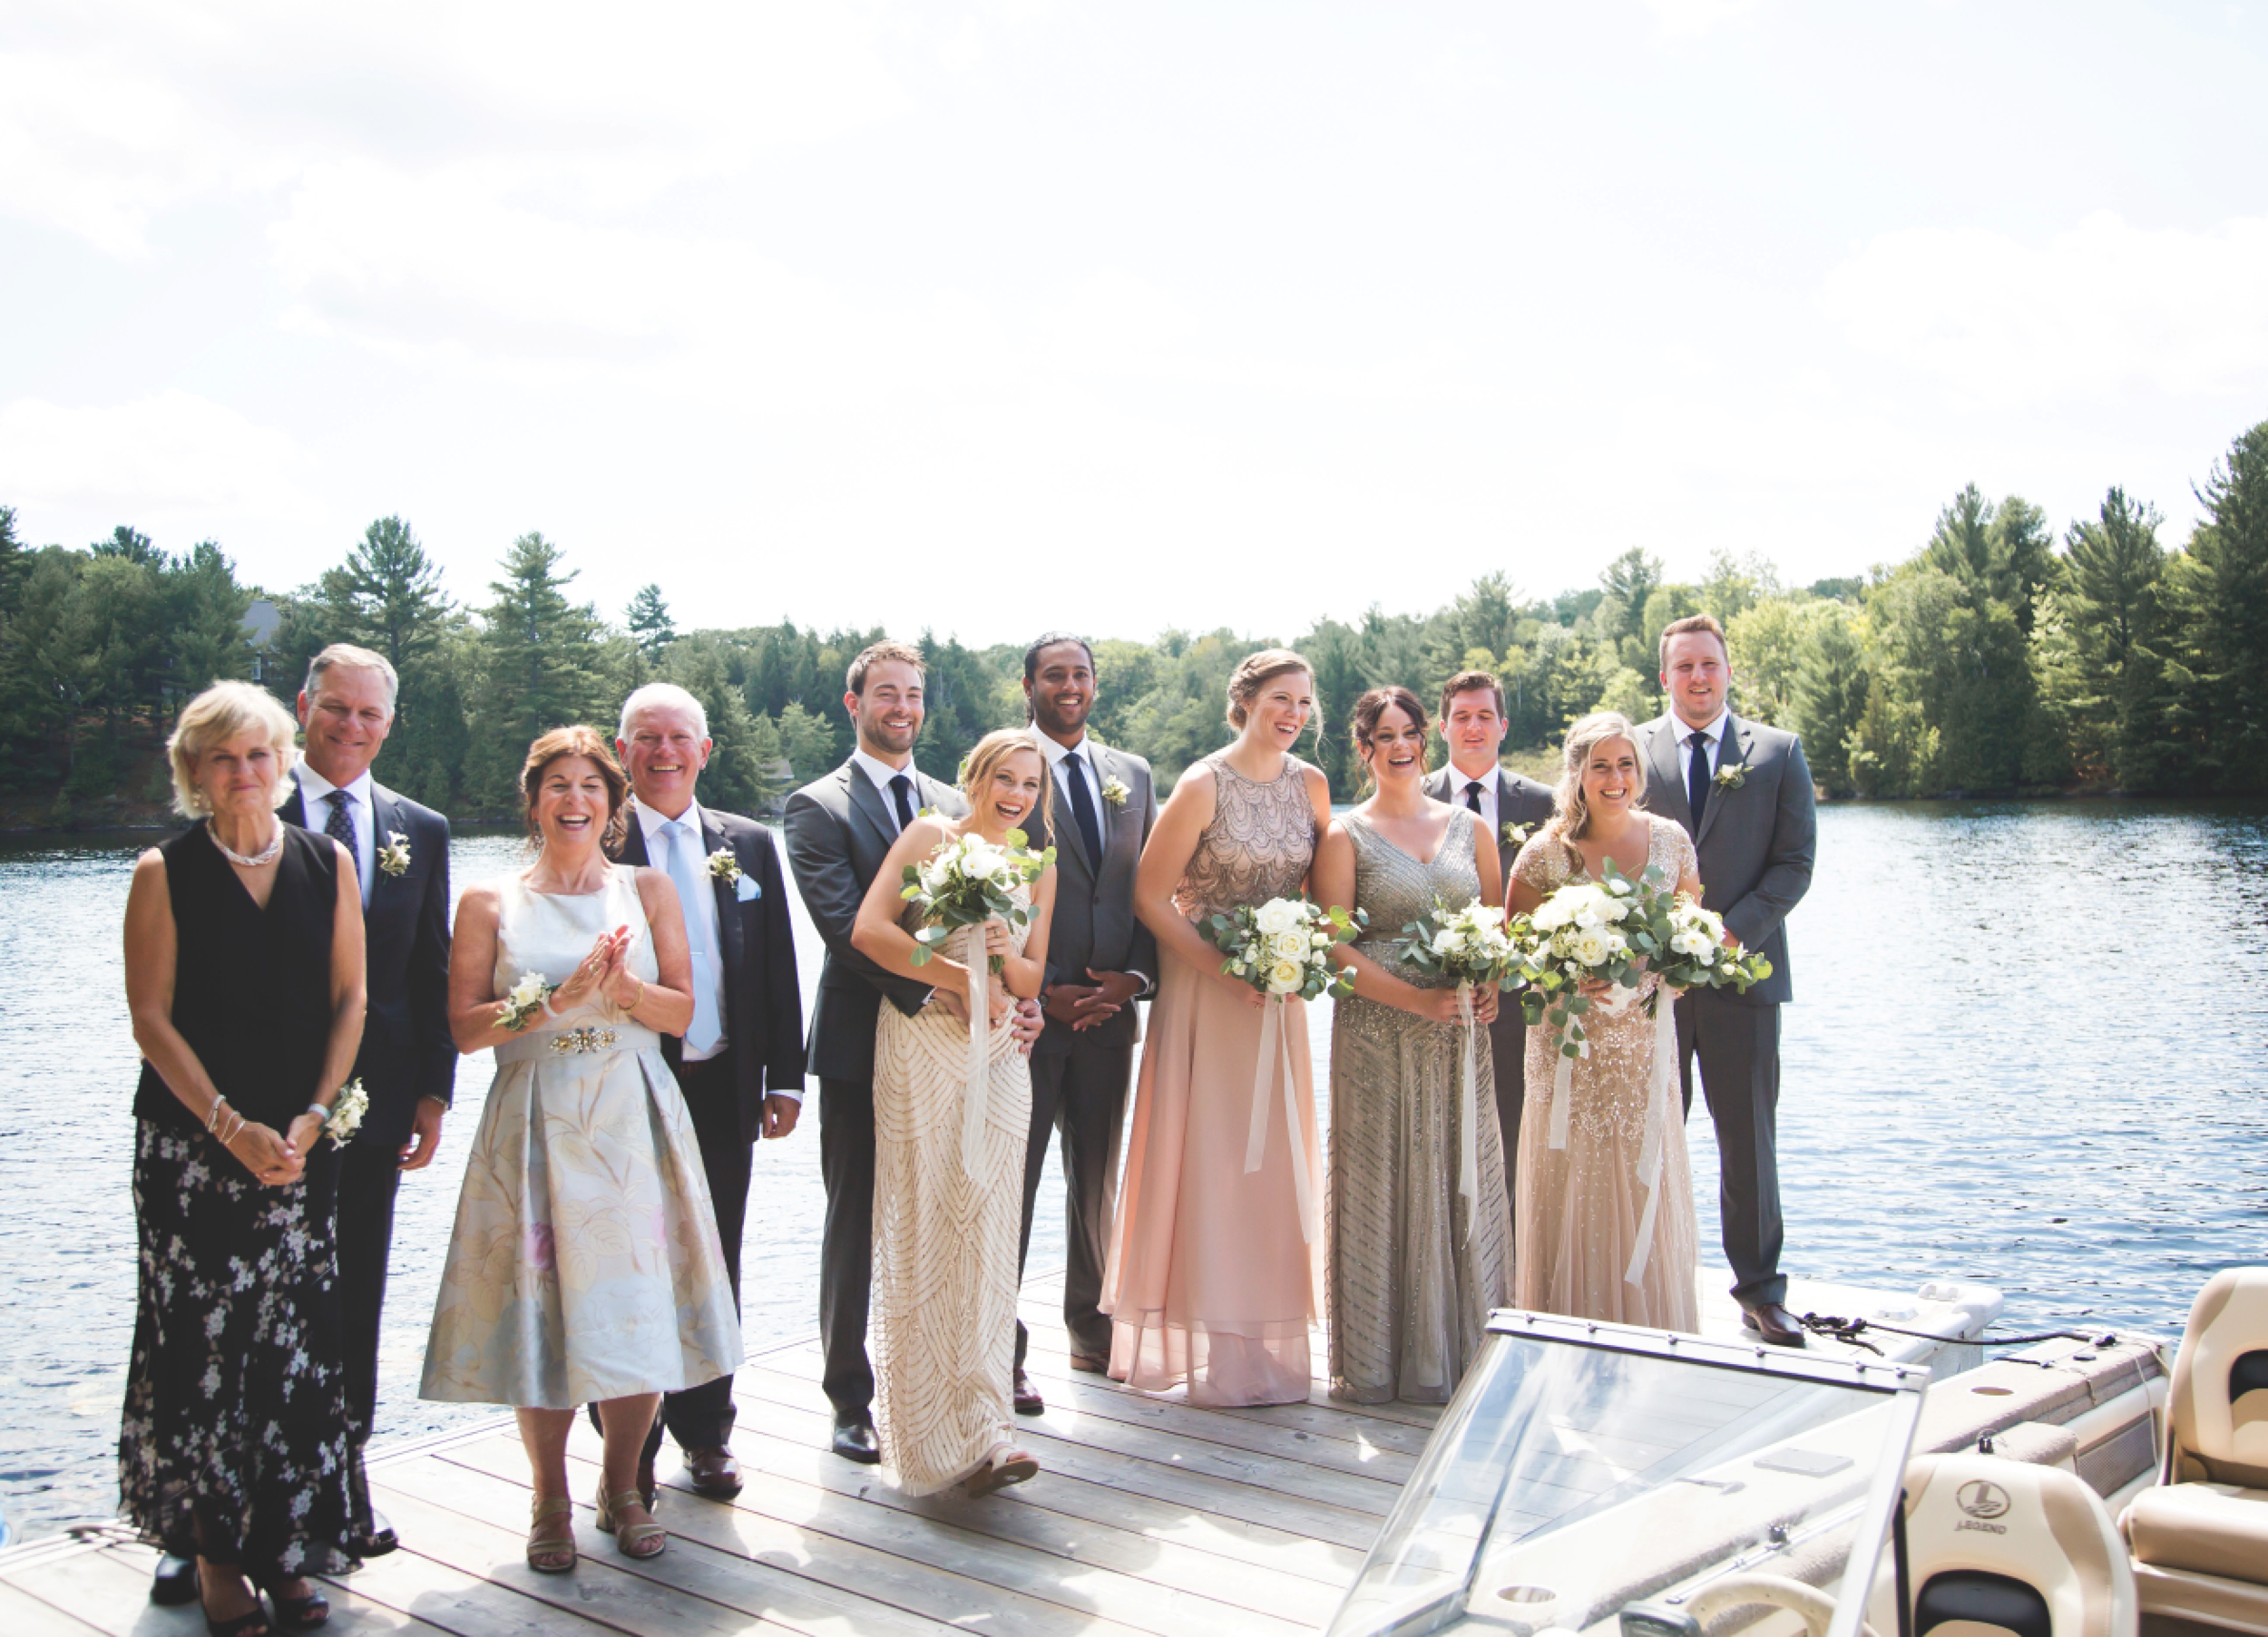 Wedding-Photos-Muskoka-Clevelands-House-Photographer-Wedding-Hamilton-GTA-Niagara-Oakville-Moments-by-Lauren-Photography-Photo-Image-28.png